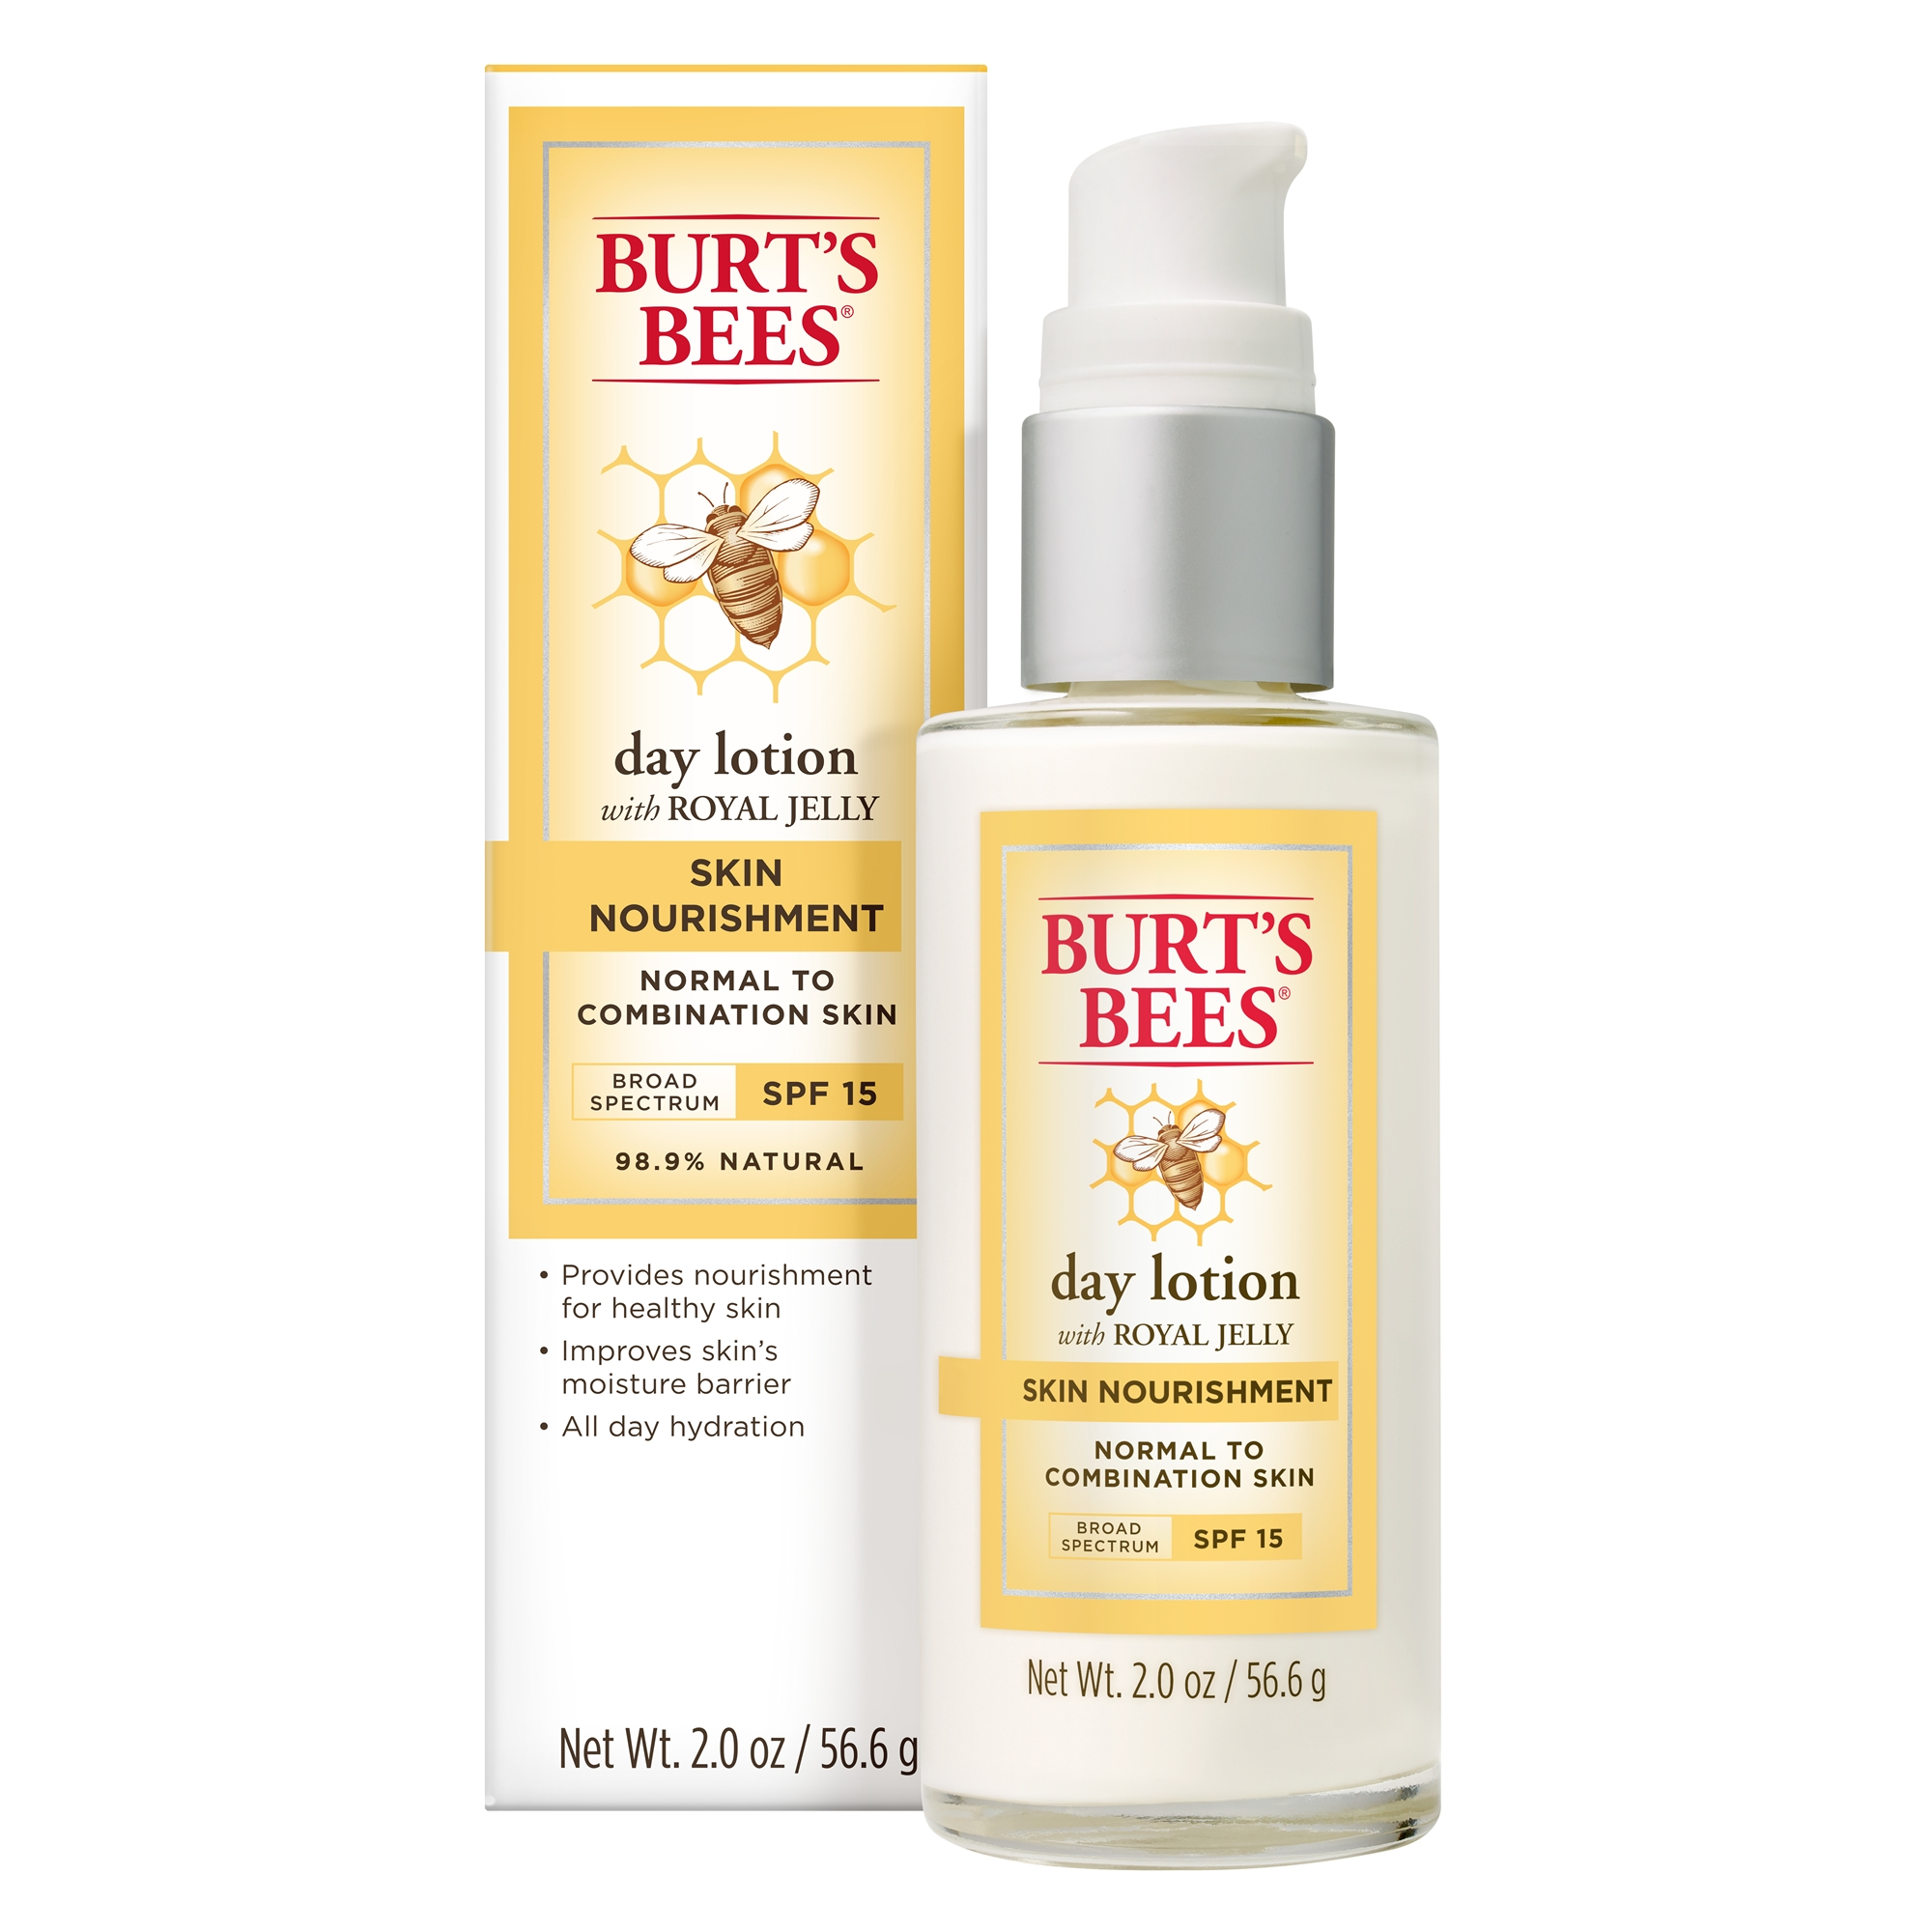 Burt's Bees Skin Nourishment Day Lotion with SPF 15 for Normal to Combination Skin, 2 oz